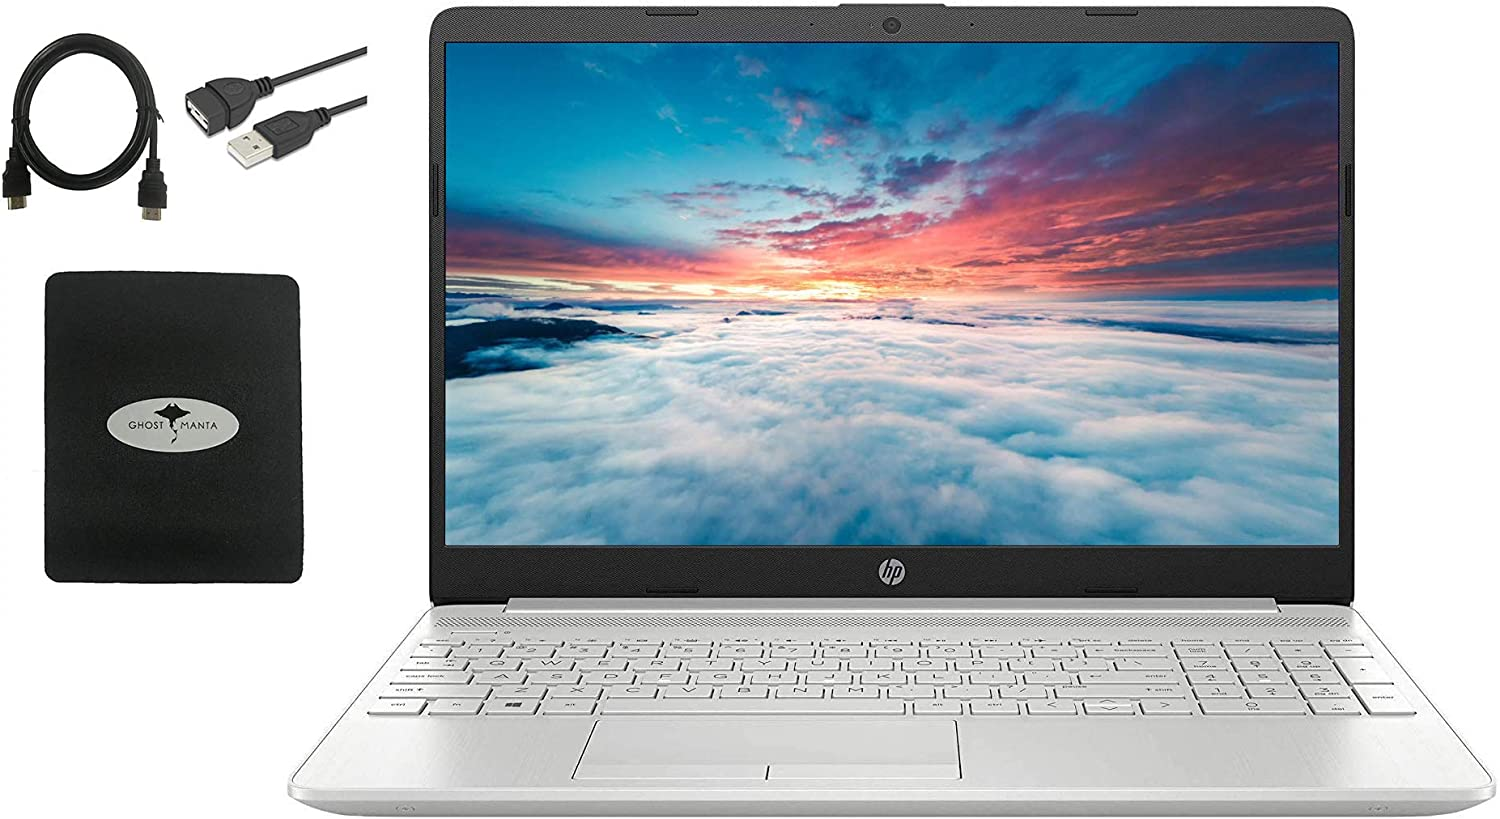 2021 Newest HP 15.6 HD Laptop for Business and Student, WLED-Backlit Display, AMD Ryzen 3 3250U(Up to 3.5GHz), 16GB RAM, 1TB HDD+256GB SSD, Ethernet, WiFi, Fast Charge, HDMI, w/Ghost Manta Accessories